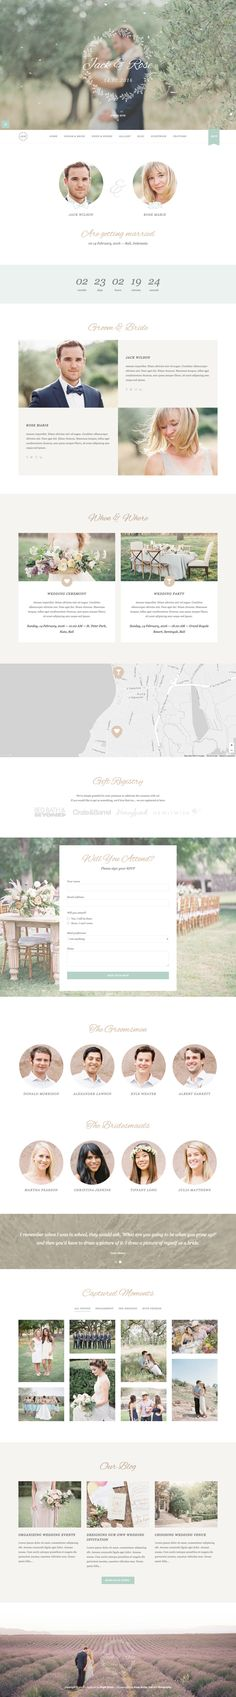 "'Jack & Rose' is a great looking One Page Wedding WordPress theme perfect to announce the special day. Features include parallax scrolling, countdown timer, Google Maps with custom marker, gift registry section, a smart RSVP form and a big image pop-up gallery with category filter. Nice touch with the ""falling petal"" effect as well as the Soundcloud integrated background music, which is optional of course."